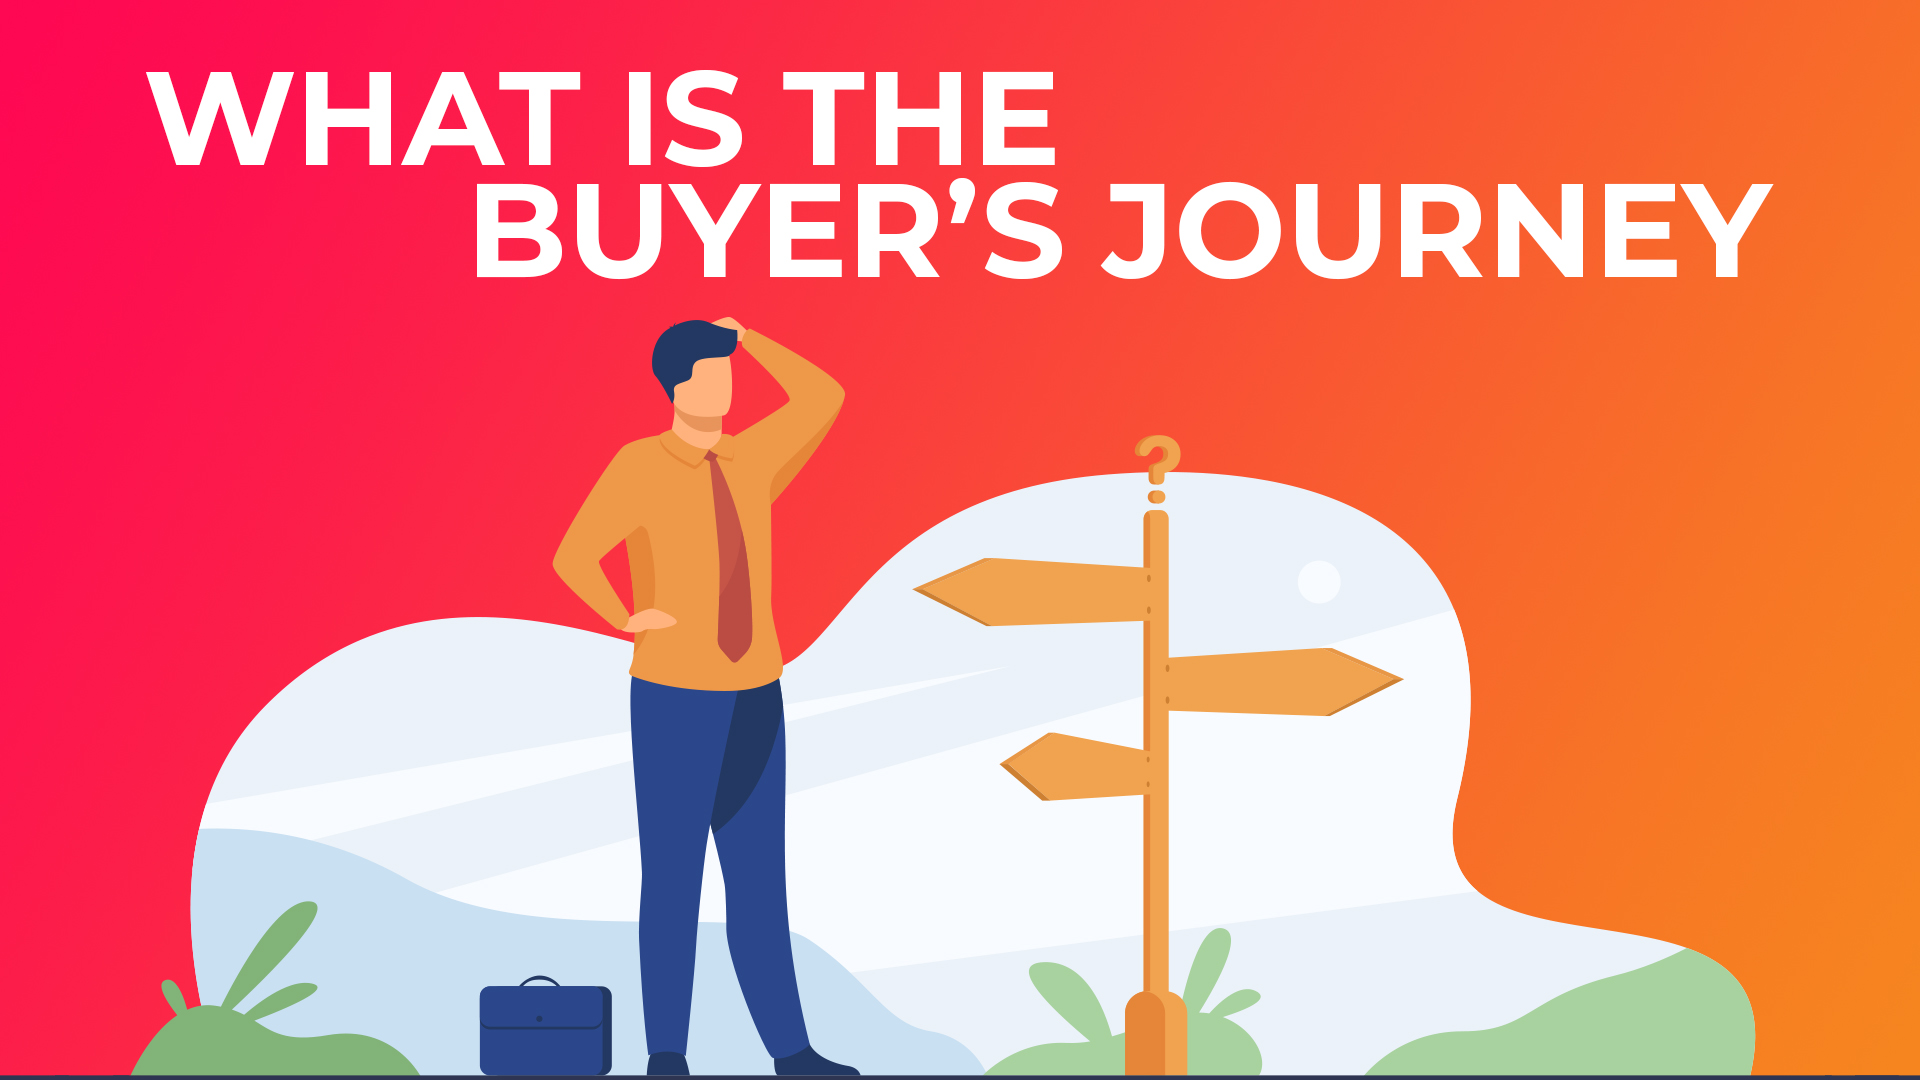 What is the buyers journey